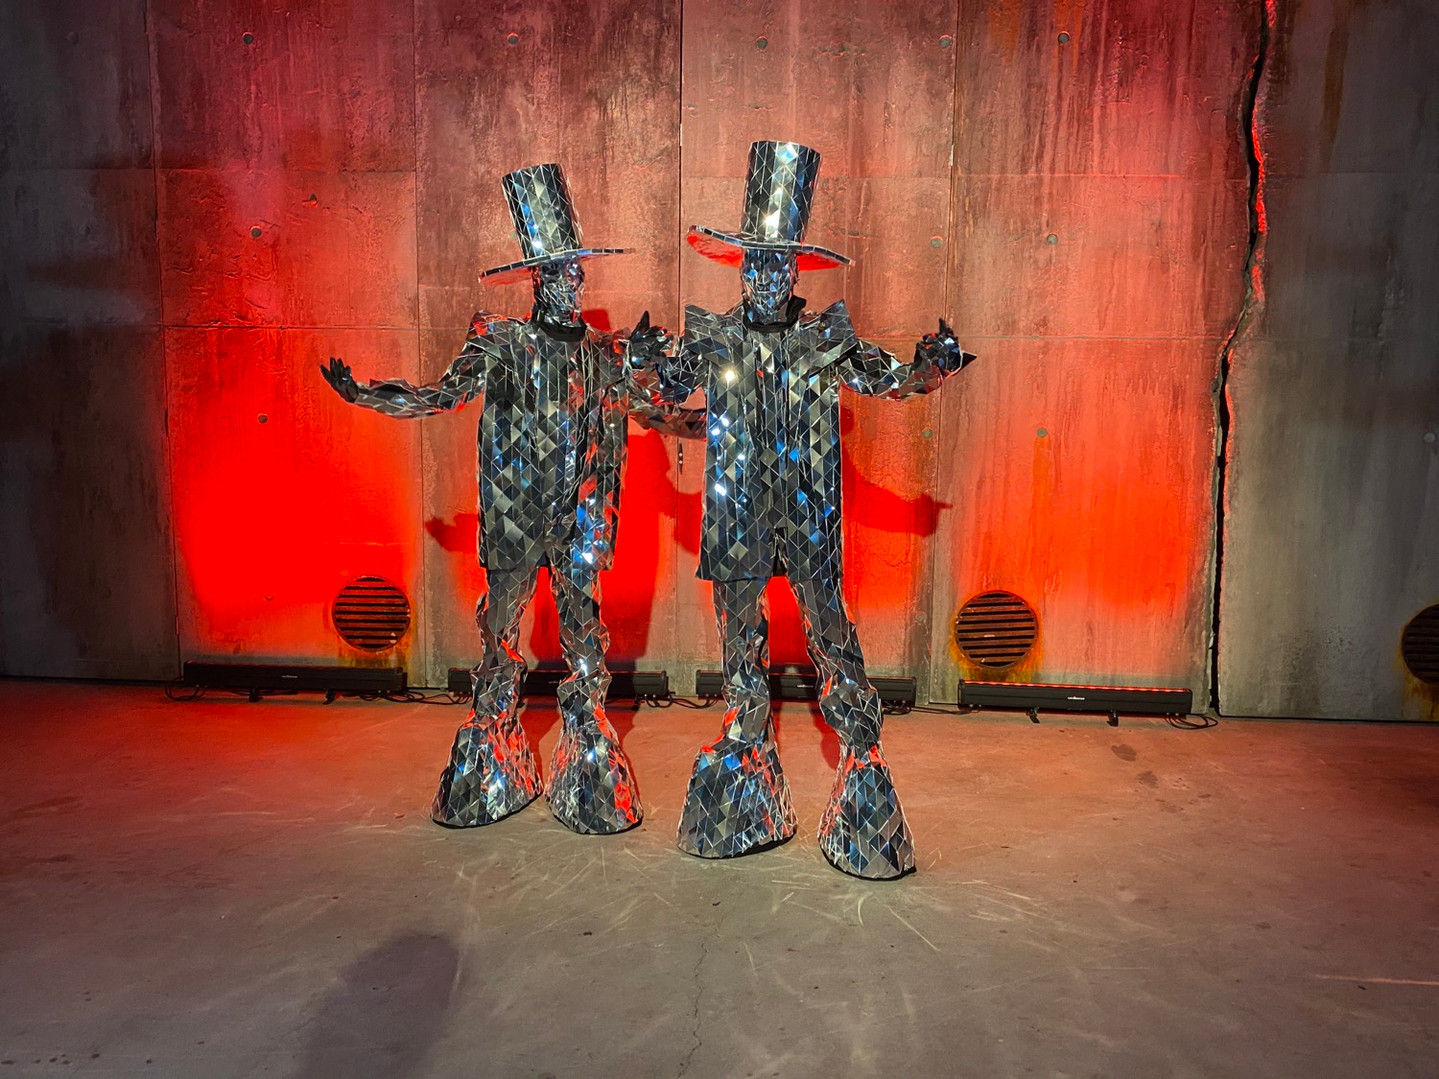 Mirror Man Costumes act